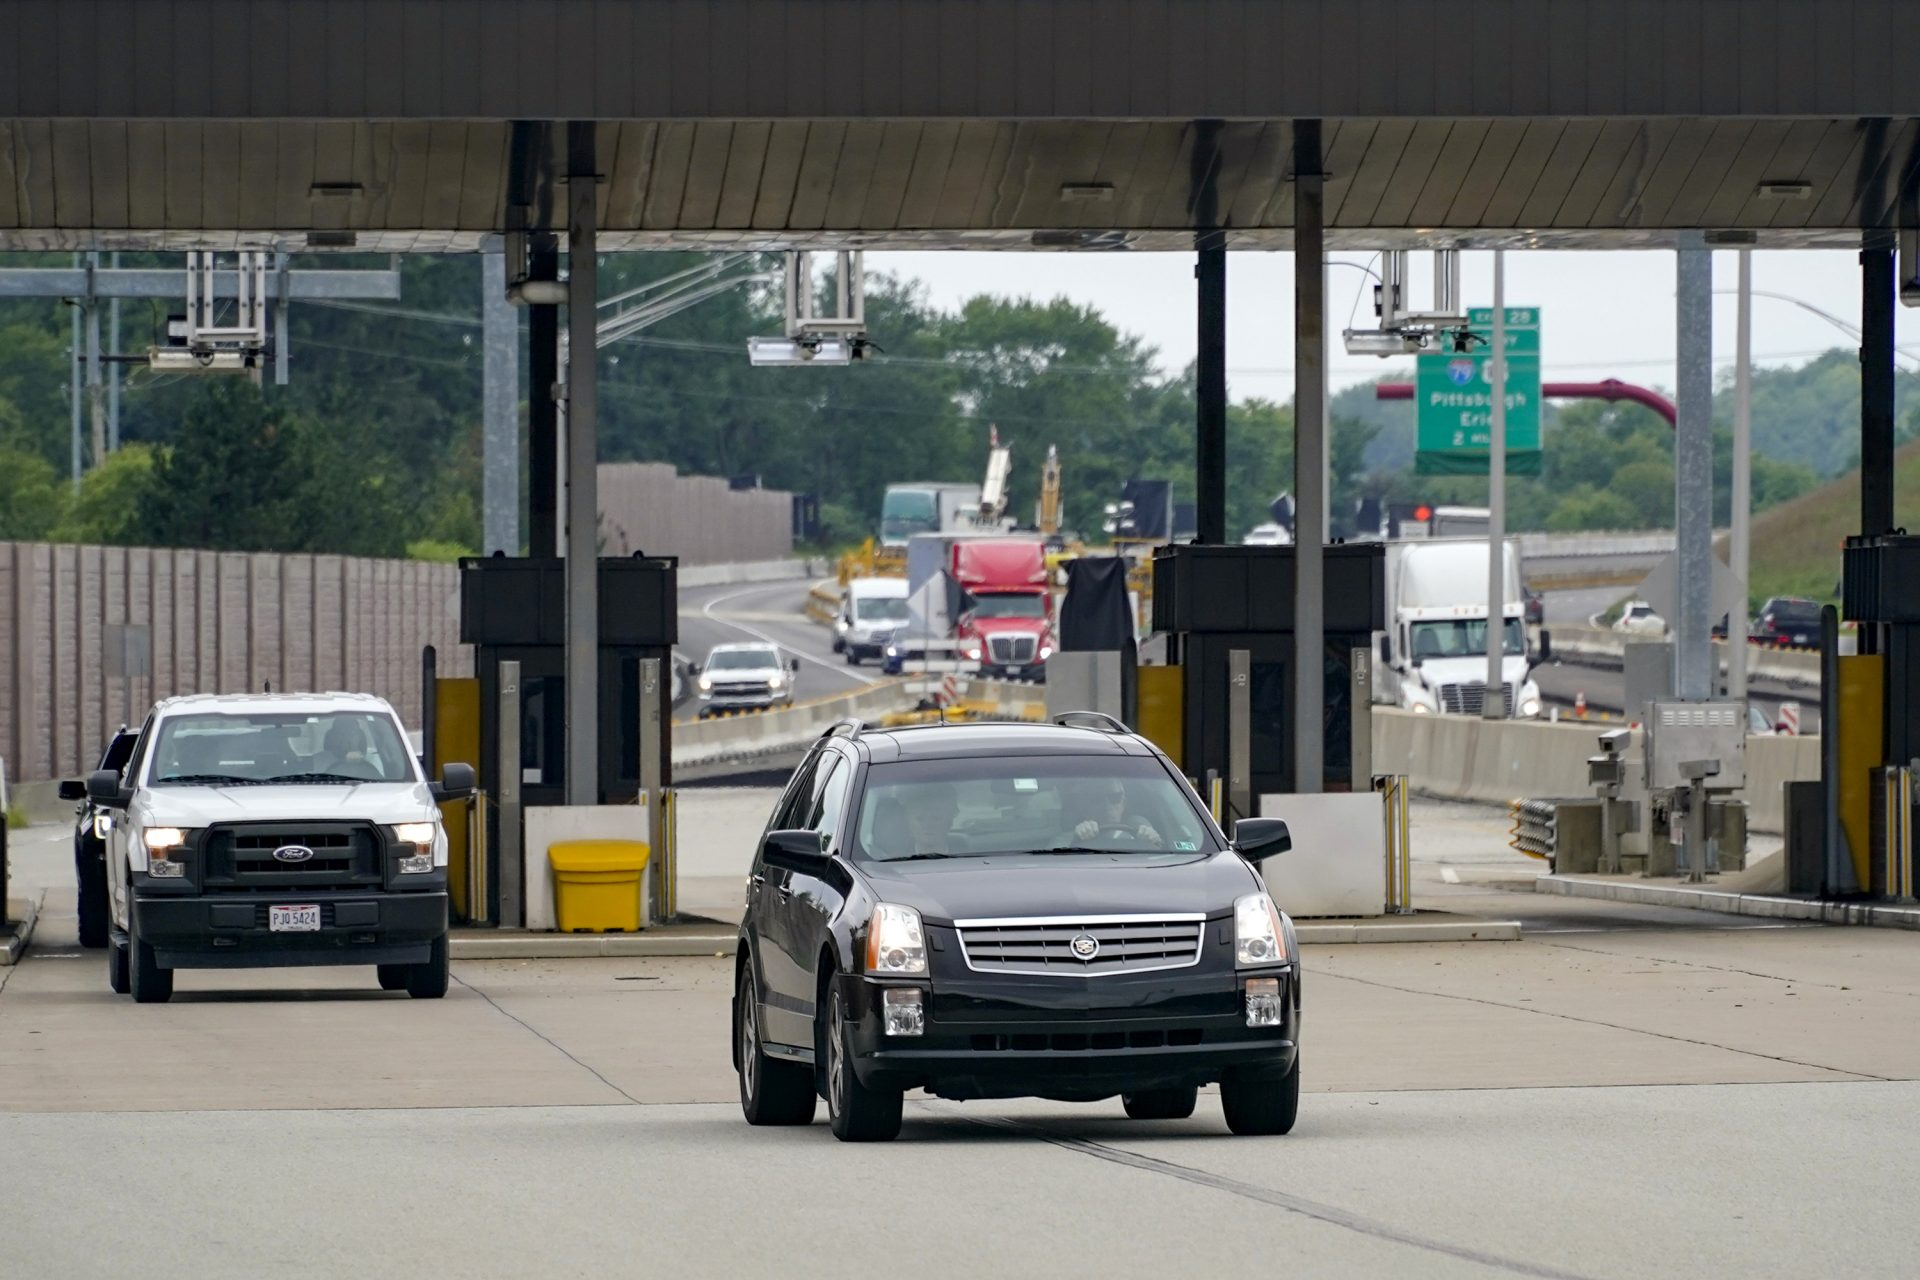 Traffic going eastbound on the Pennsylvania Turnpike proceeds through the electronic toll booths in Cranberry Township, Pa., on Monday, Aug. 30, 2021.